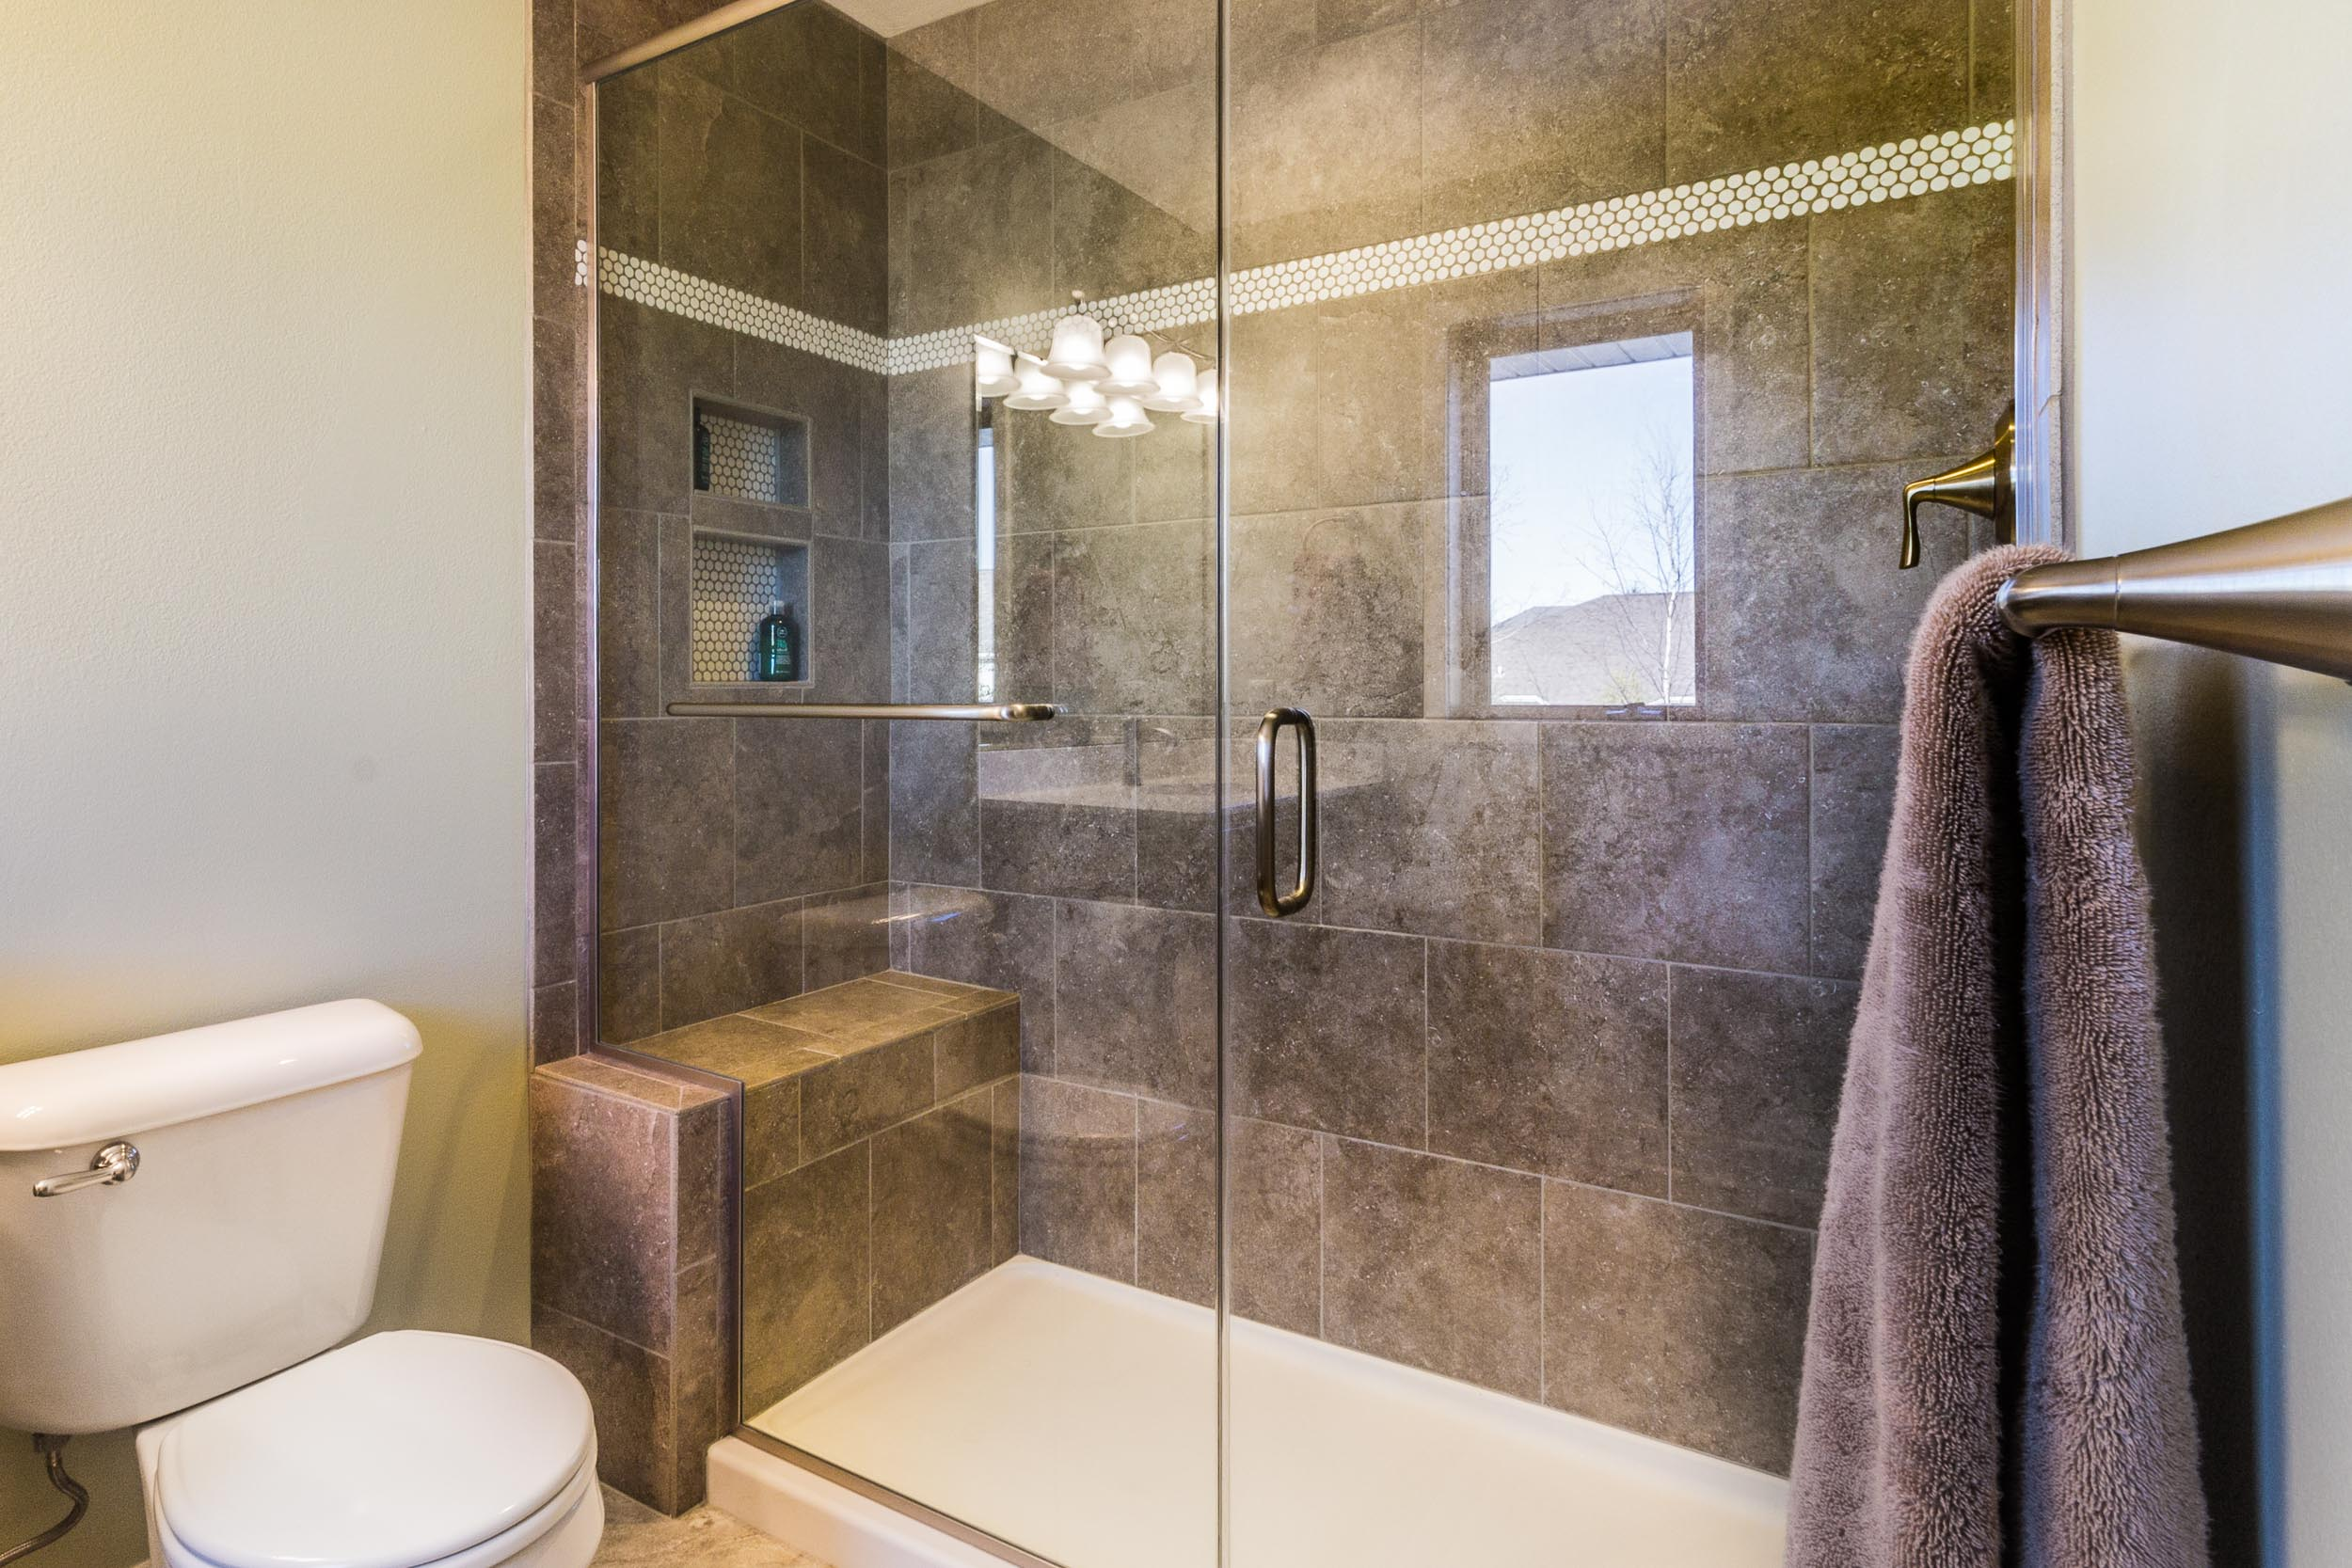 - The white penny tile stripe complements the white shower base, and the penny shape is evident because the dark grout used contrasts with it.